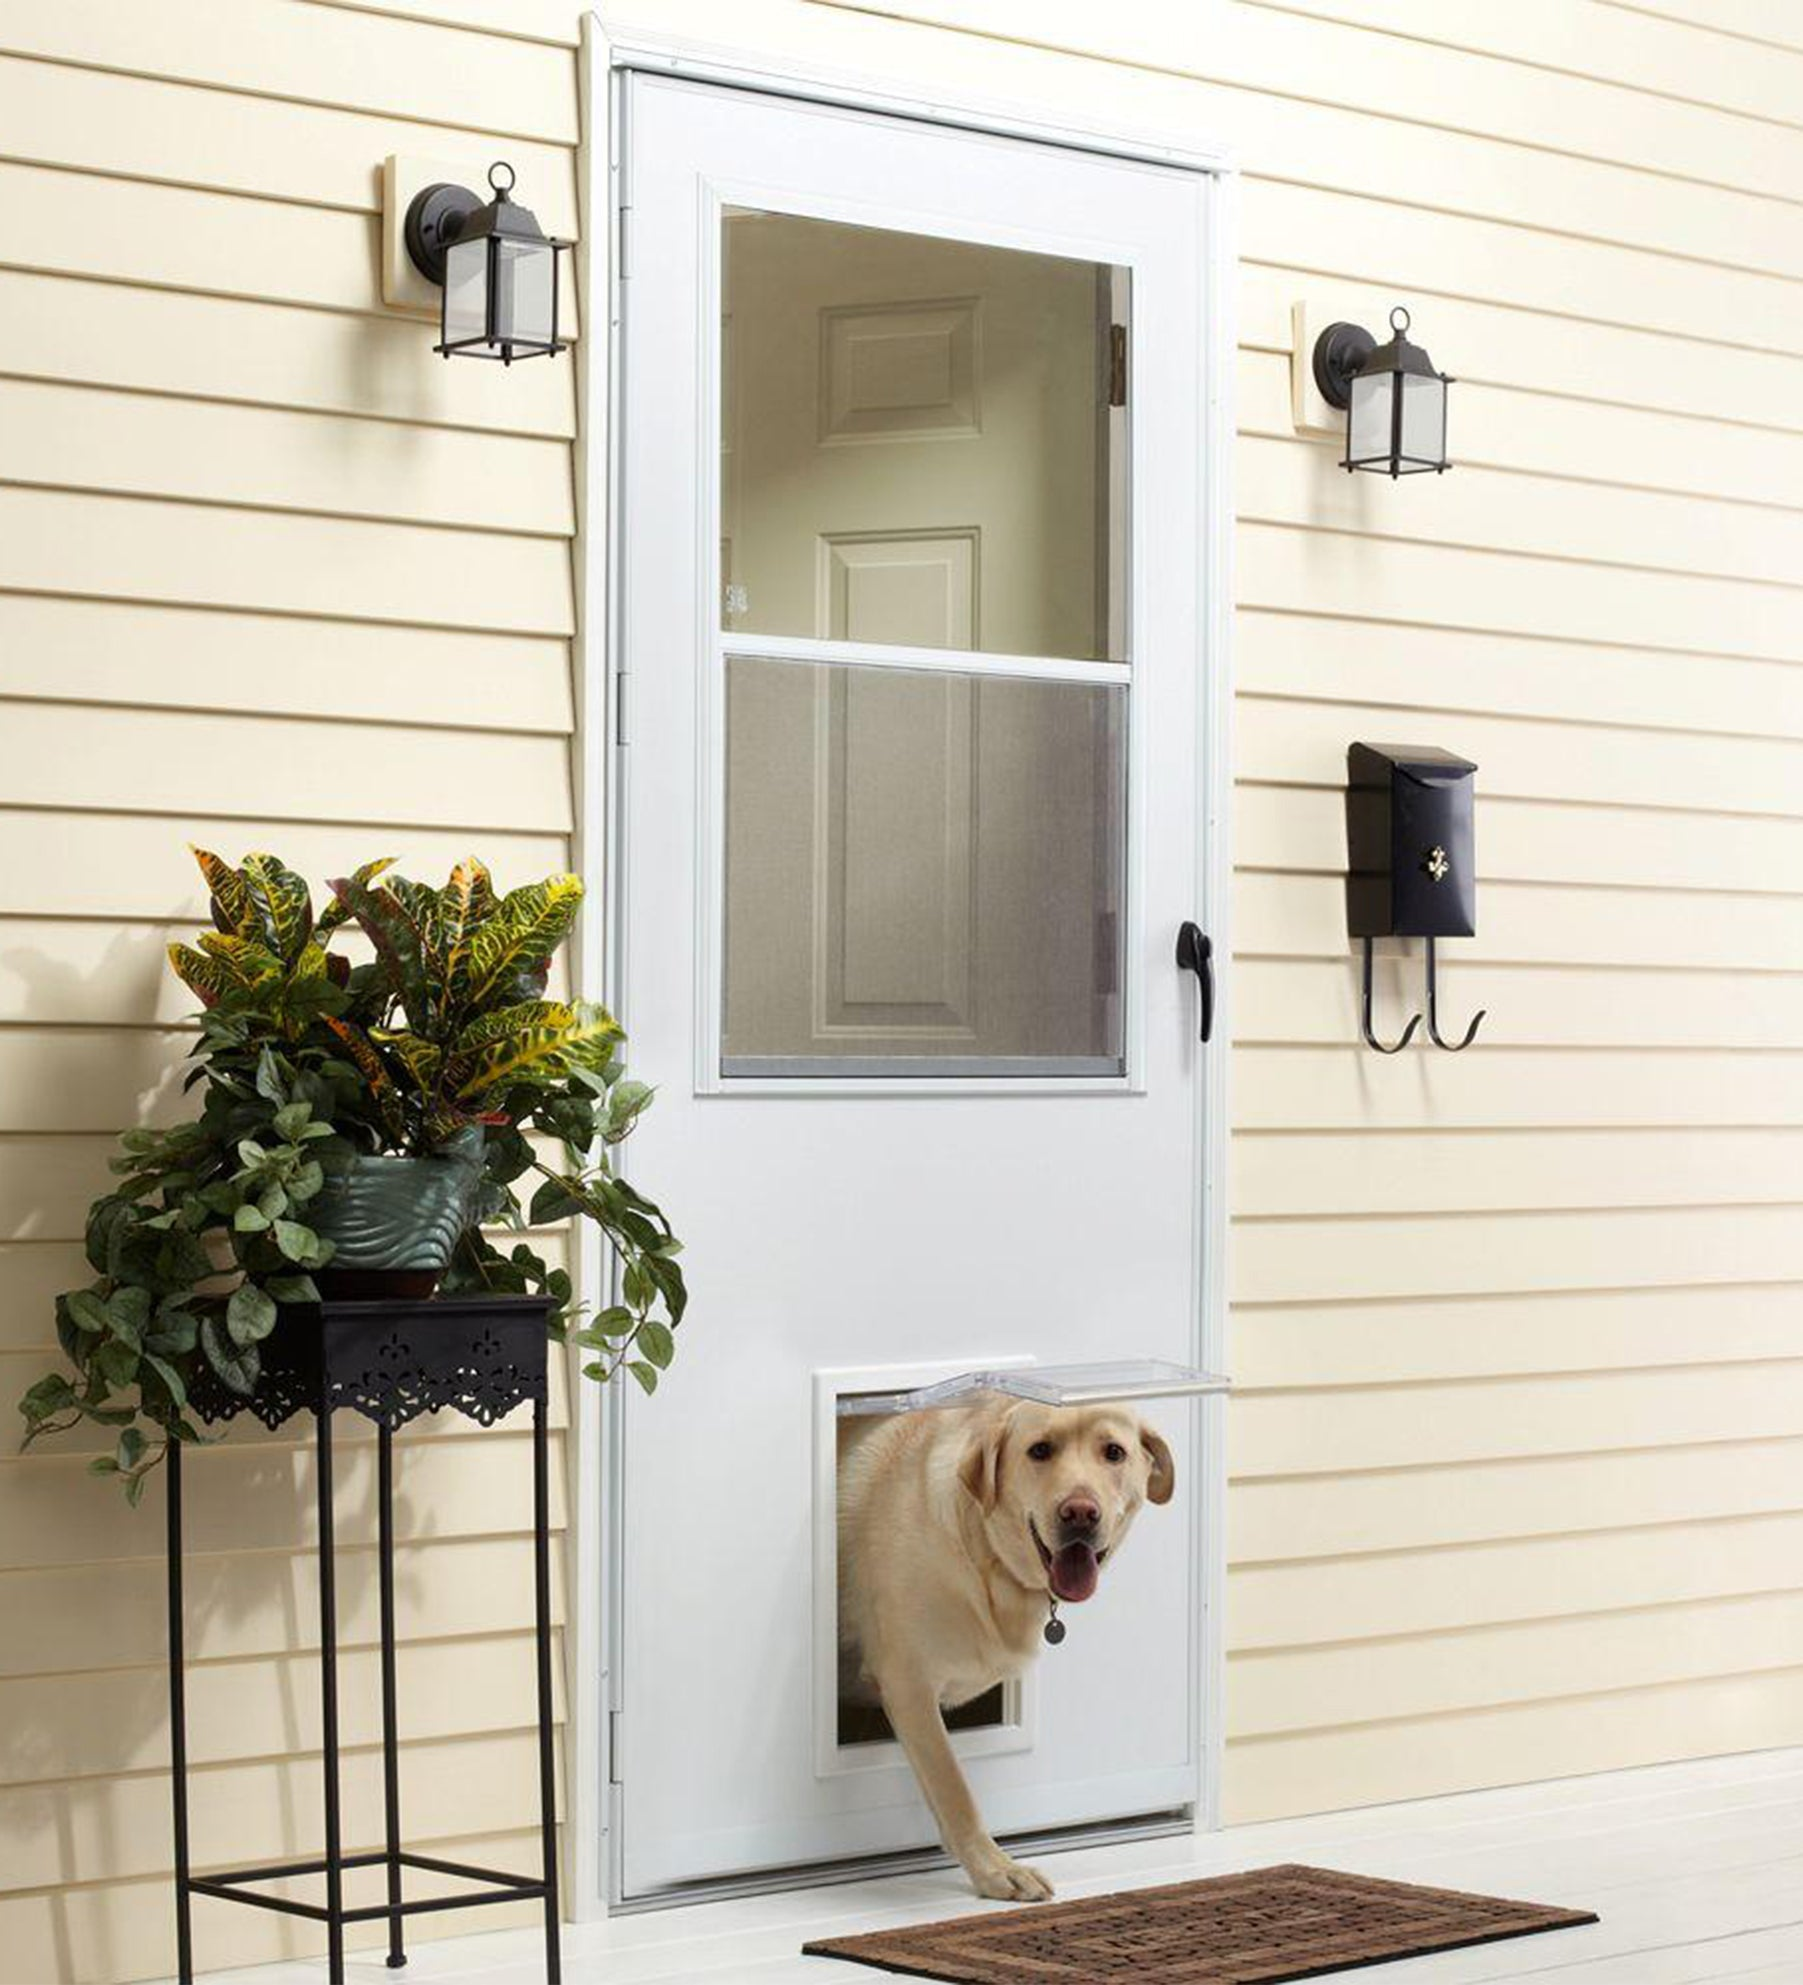 INSTALLED Larson Life-Core Pet Door Storm Door w/ Hardware STARTING $558.99